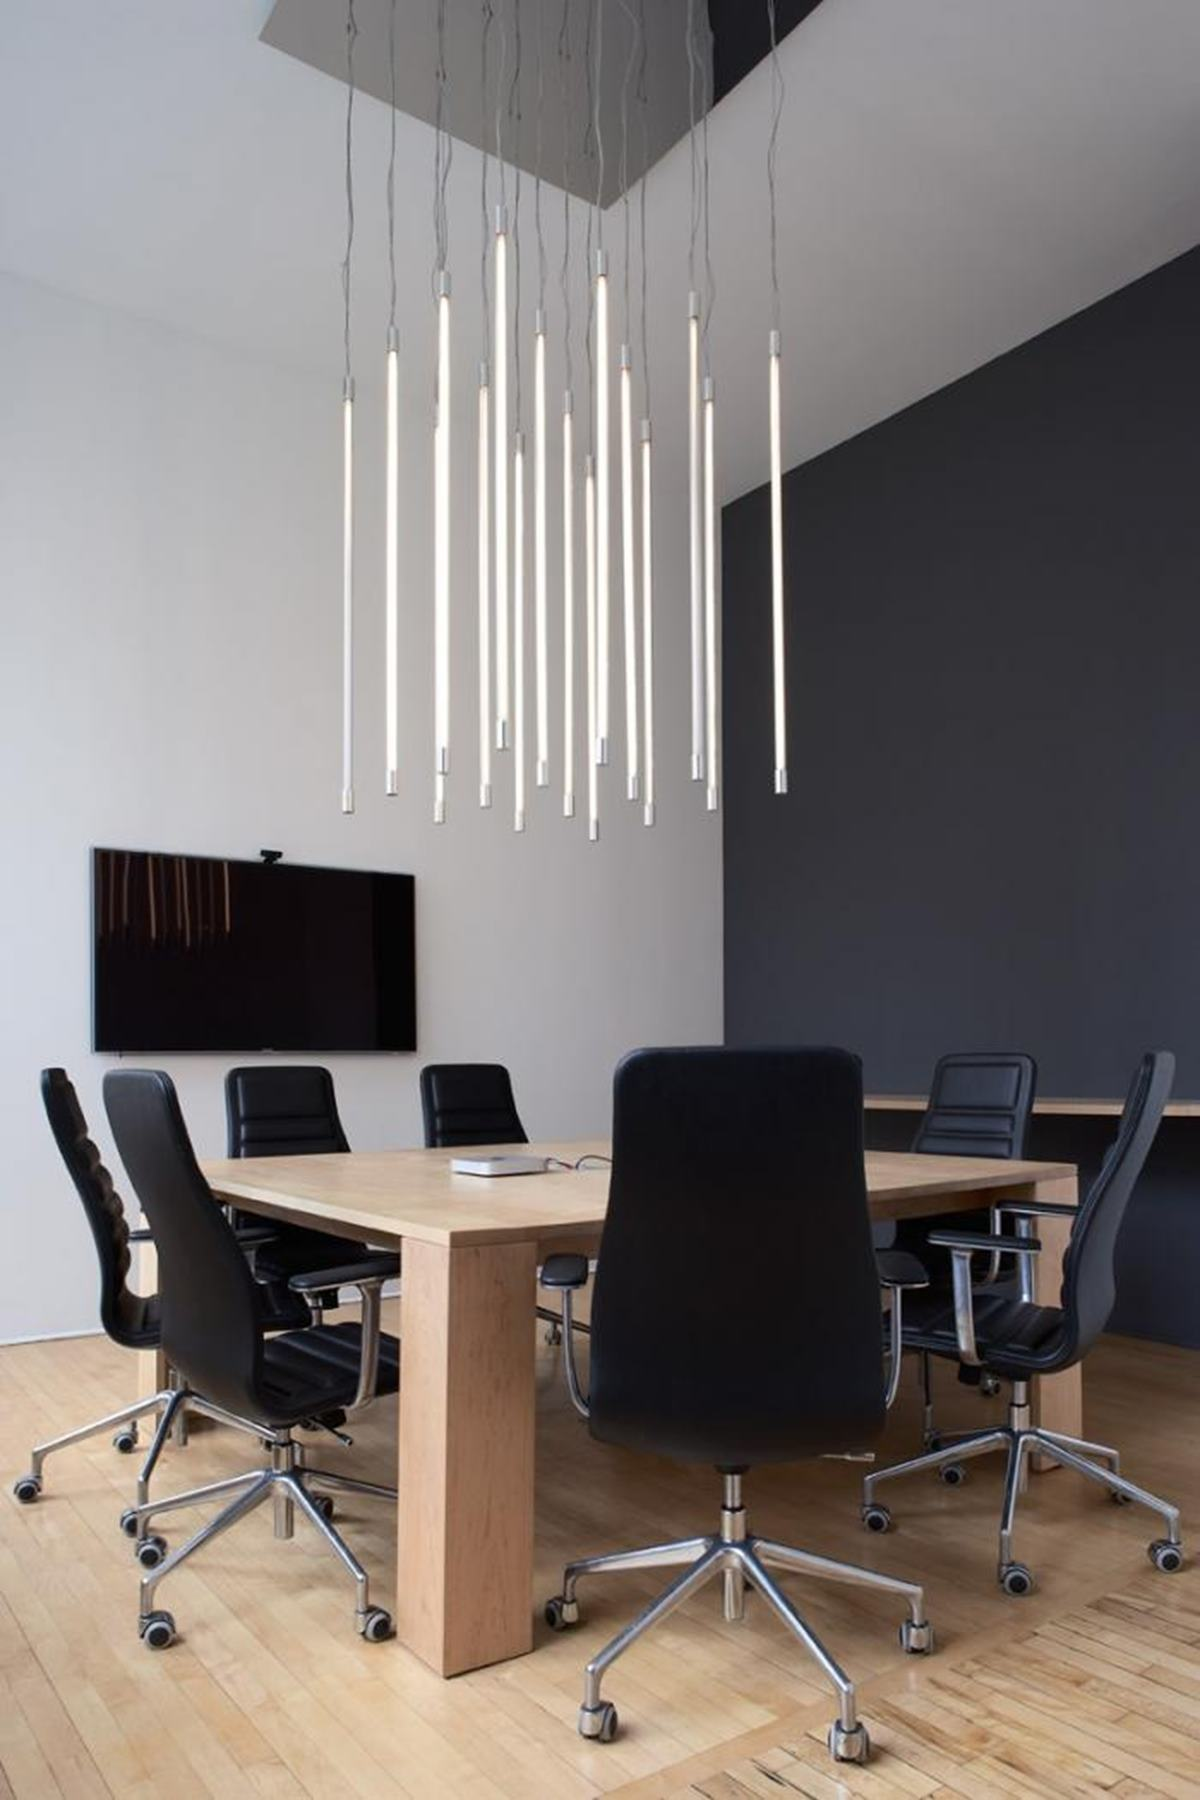 This light-tube lit boardroom